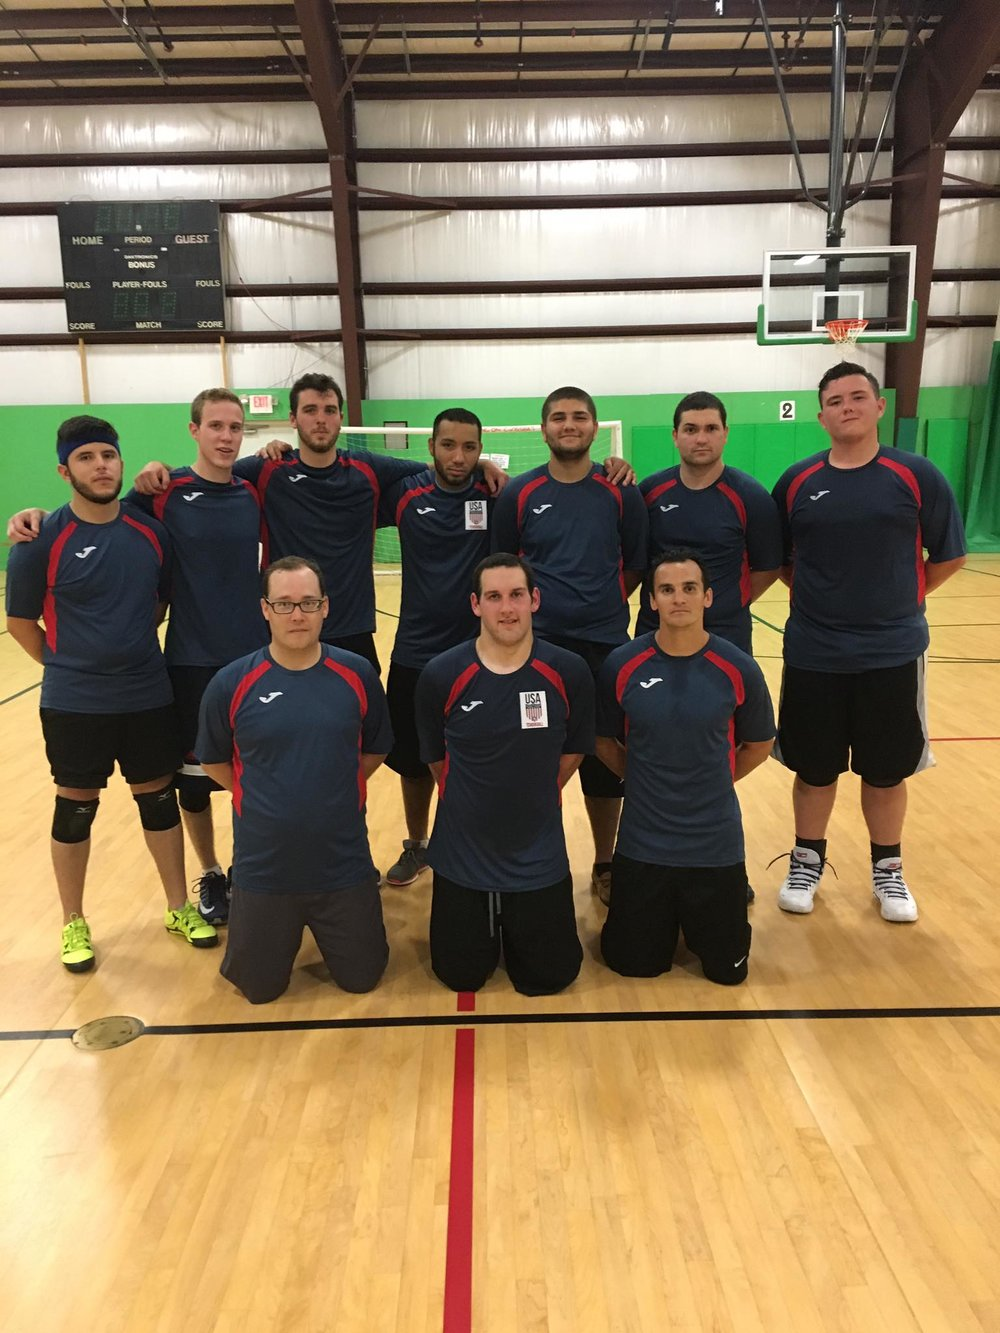 2016 National Team Members:  Back Row: Dan Castrillon-Reyes, Drew Leahy, Emmitt Harrow, Rey Gasavage, Johawar Singh, Andre Triolo-Carras, Brendan Berasain  Front Row: Steve Abreu, Tyler Vavrence, Rich Torok